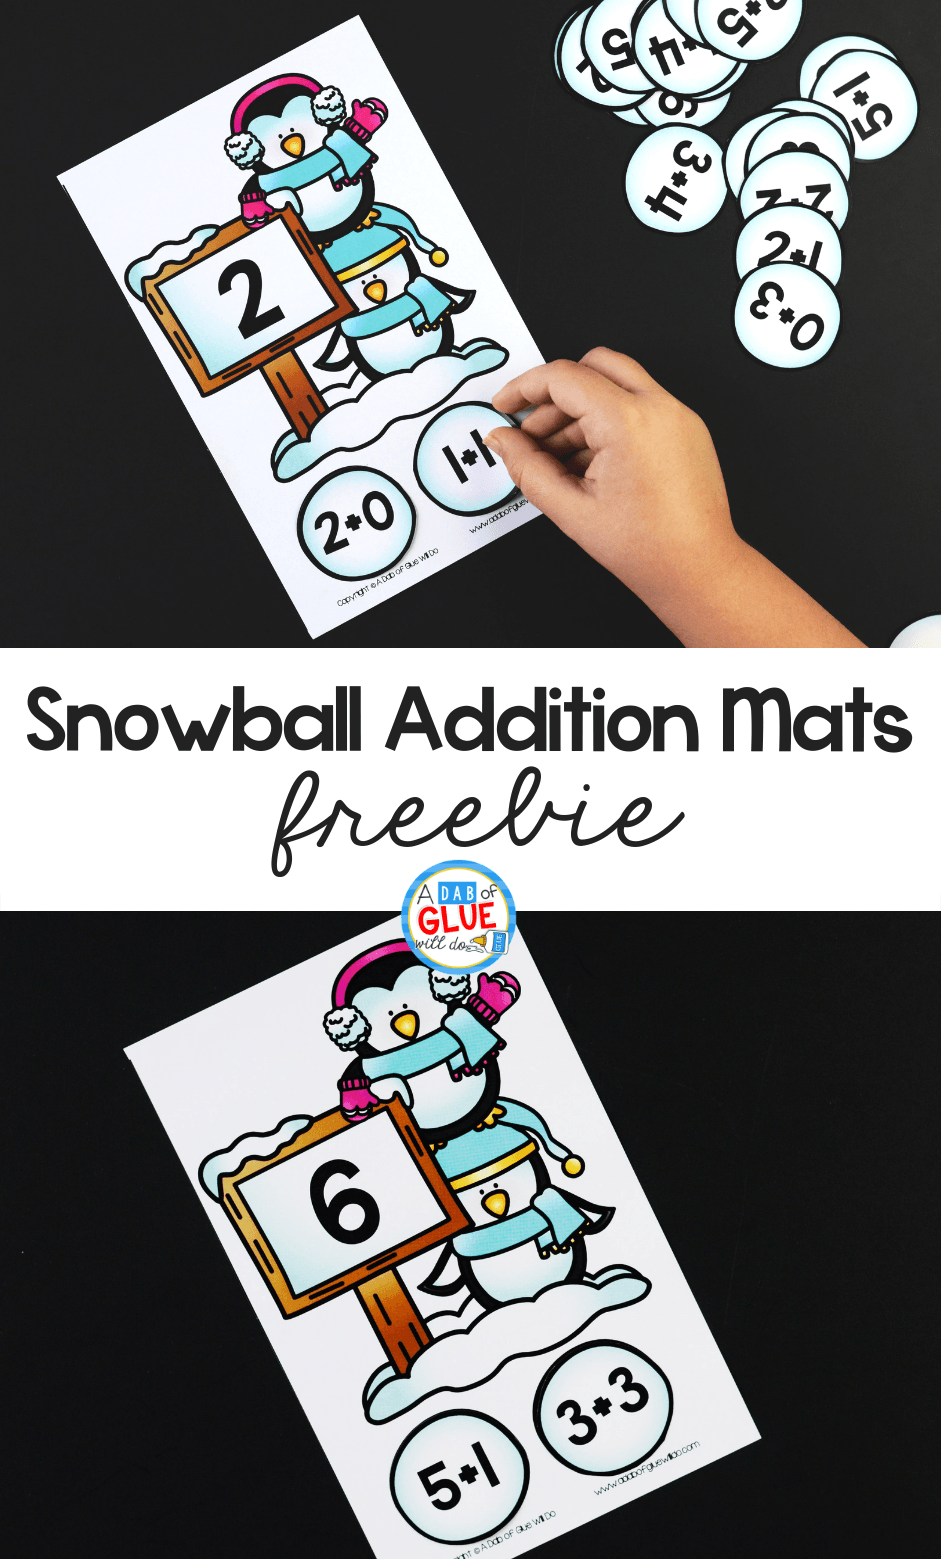 Snowball Addition Puzzles